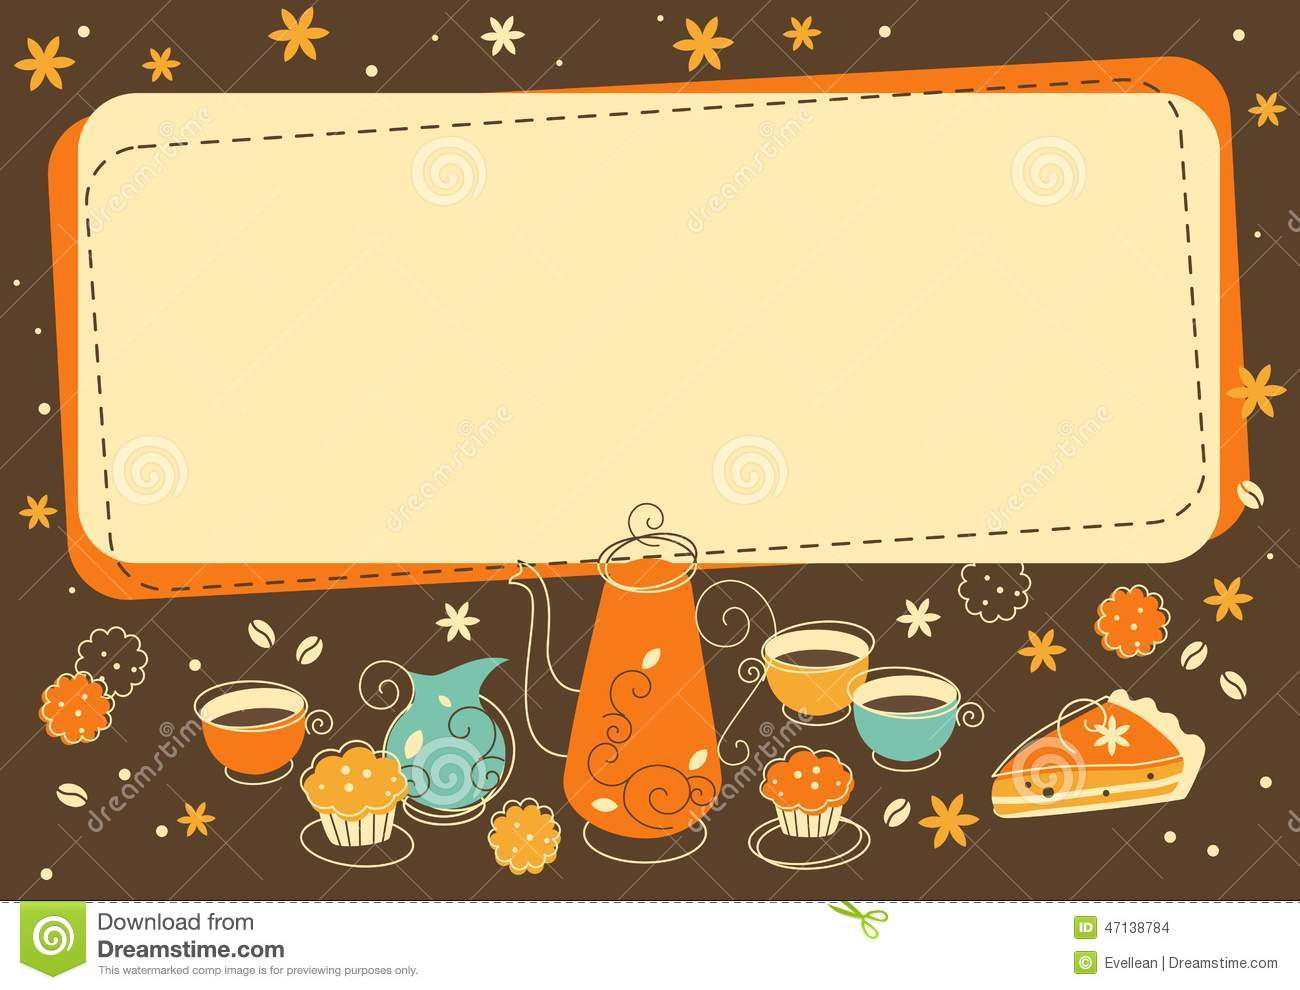 Cute Wedding Cartoon Wallpaper Tea And Bakery Background In Doodle Retro Style Stock